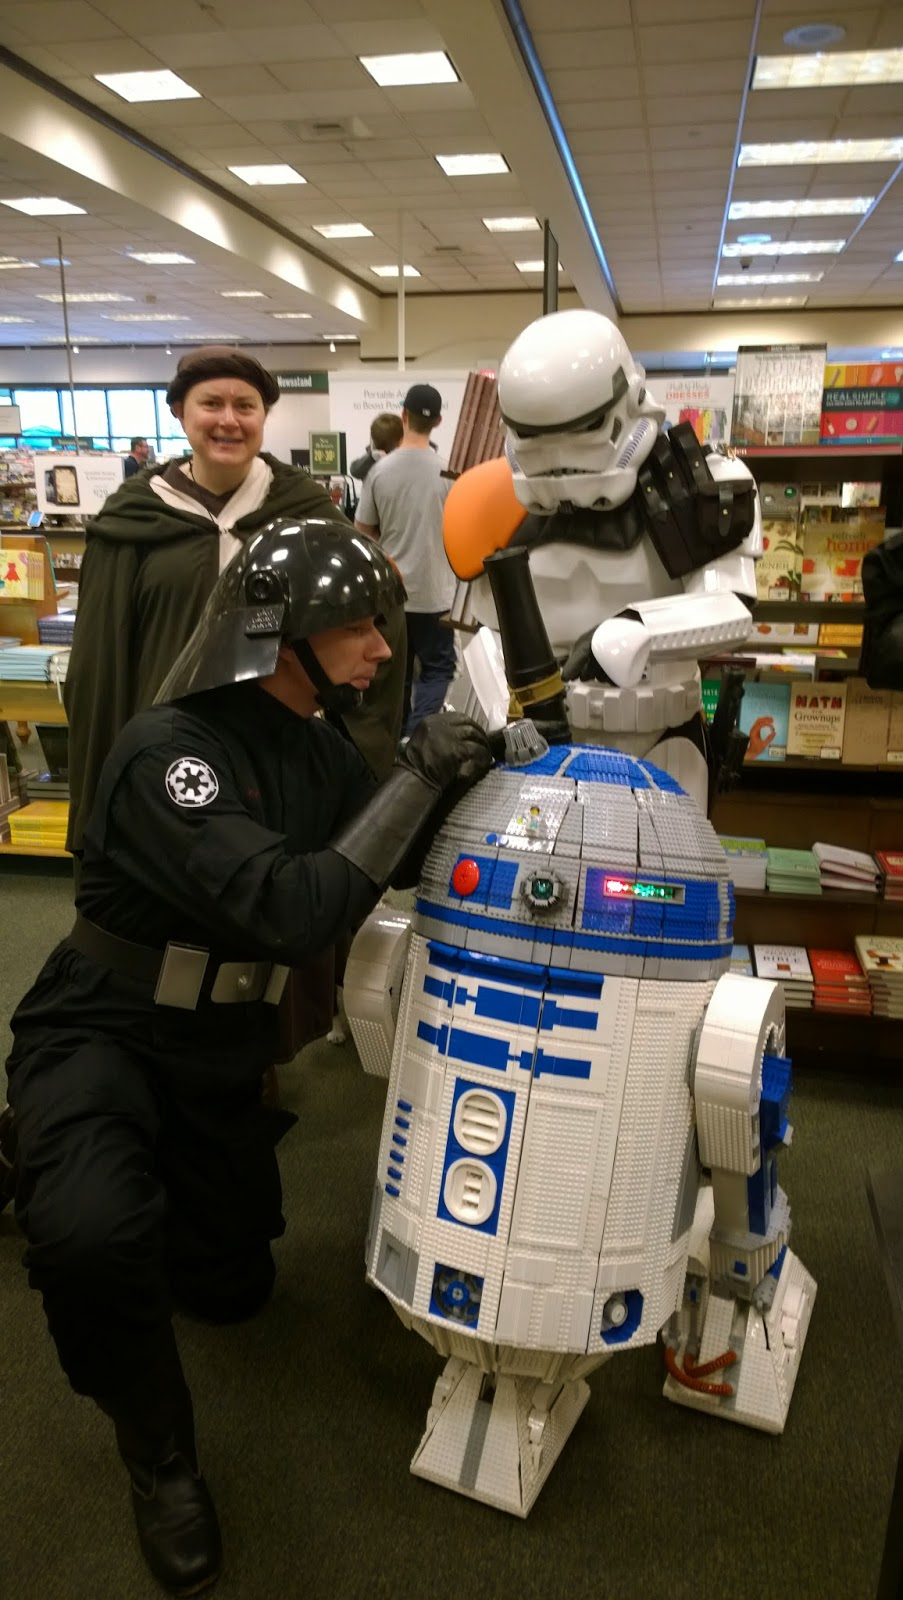 501st trying to repair L3-G0 the Lego R2D2